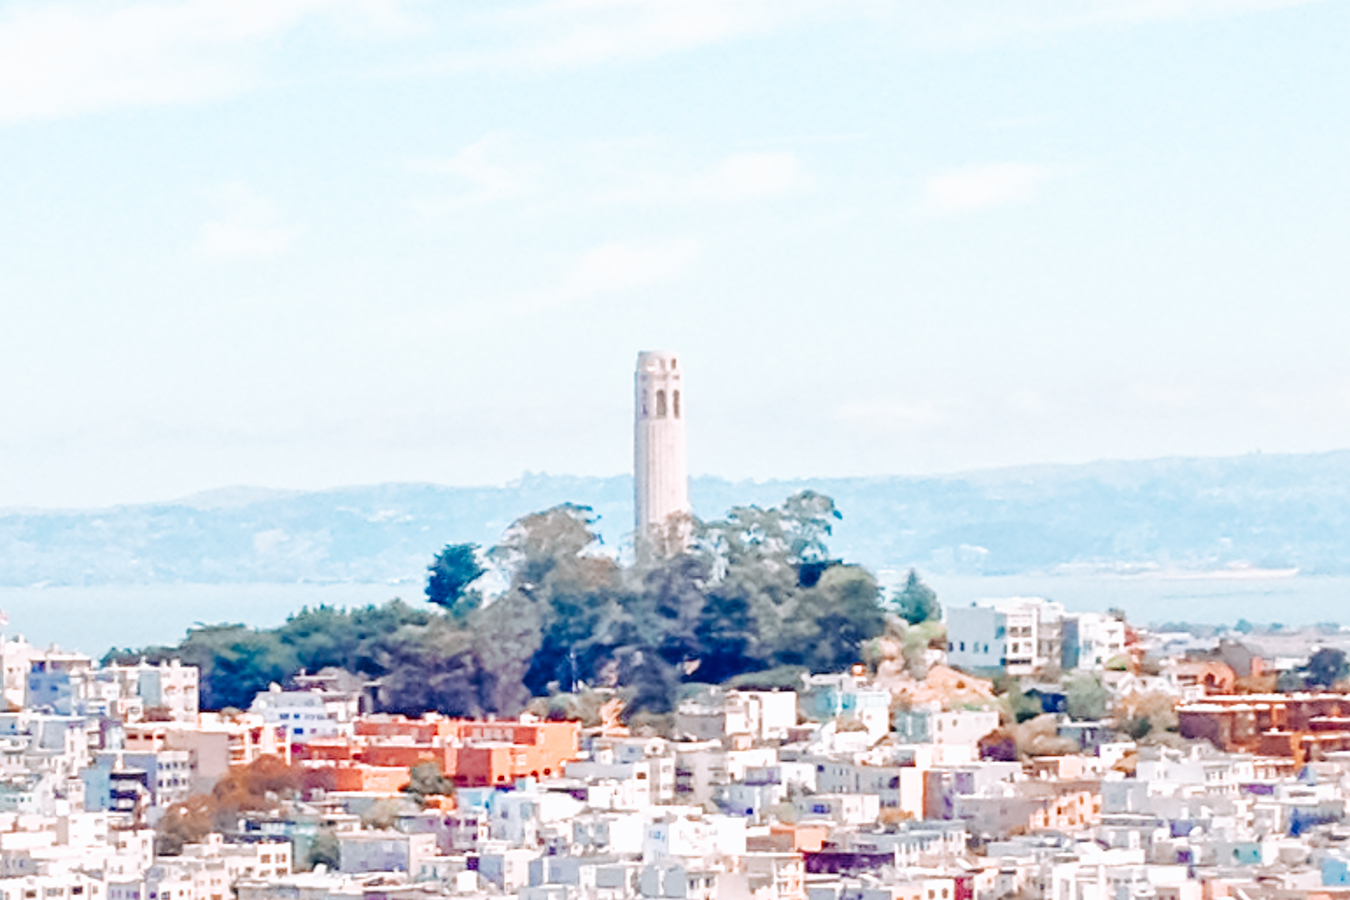 Coit Tower at North Beach